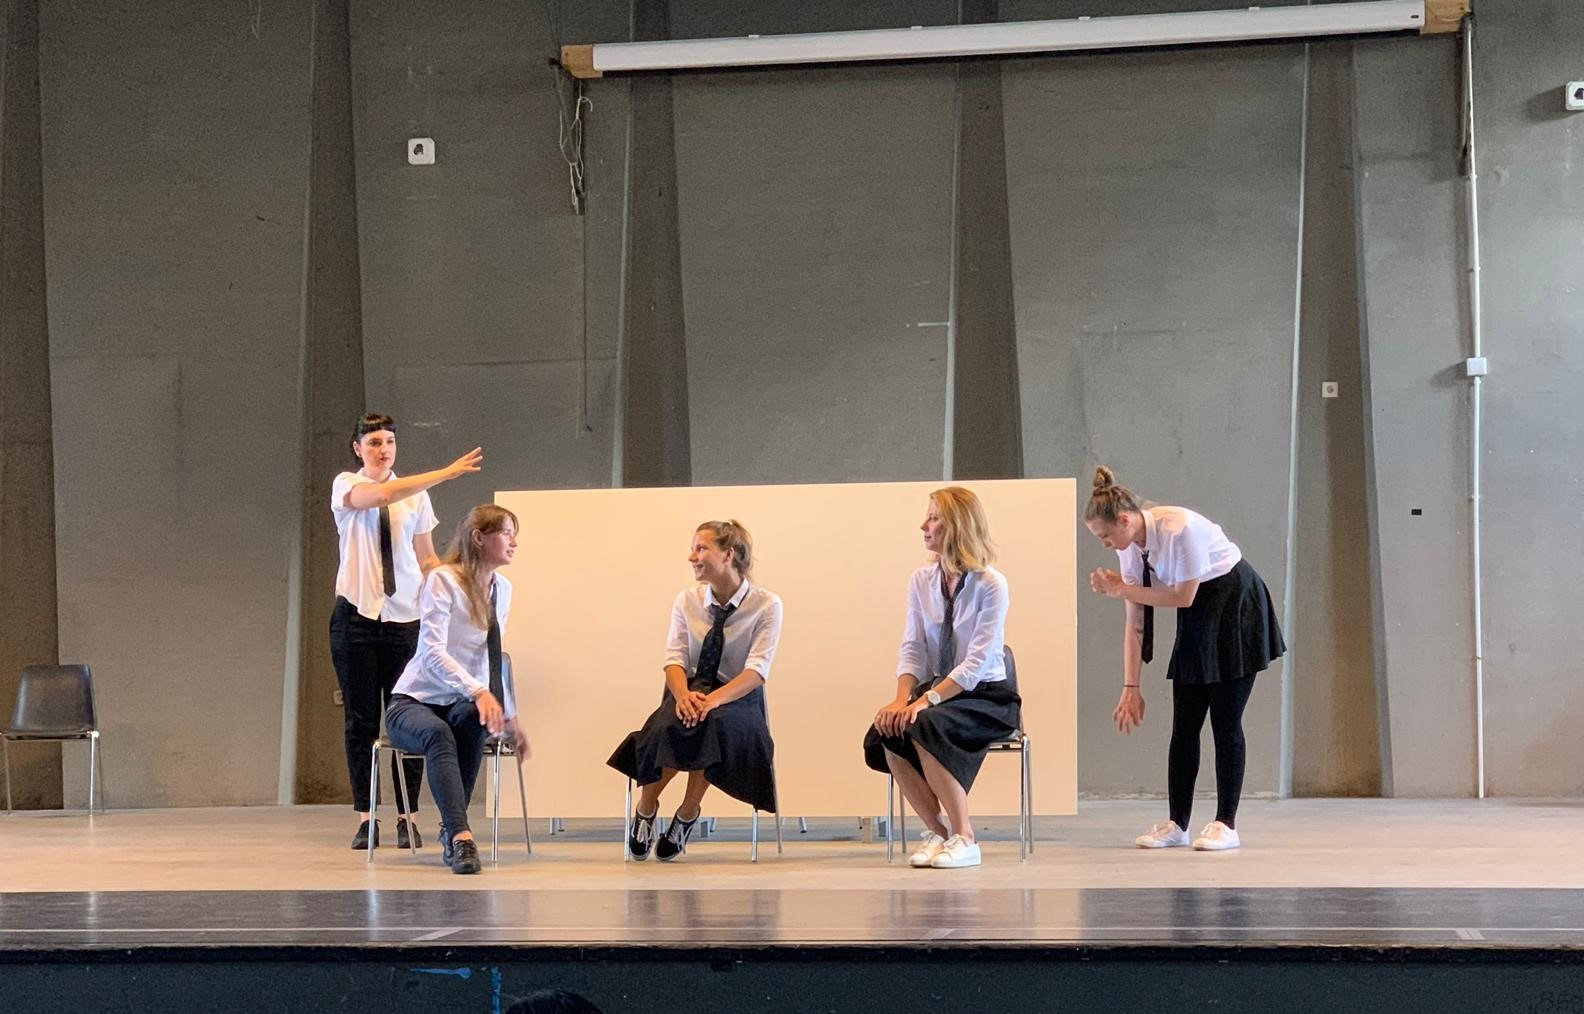 """From the show """"the magic school"""". Five actors on stage, wearing a white shirt and tie. Three are sitting, two are standing making gestures"""